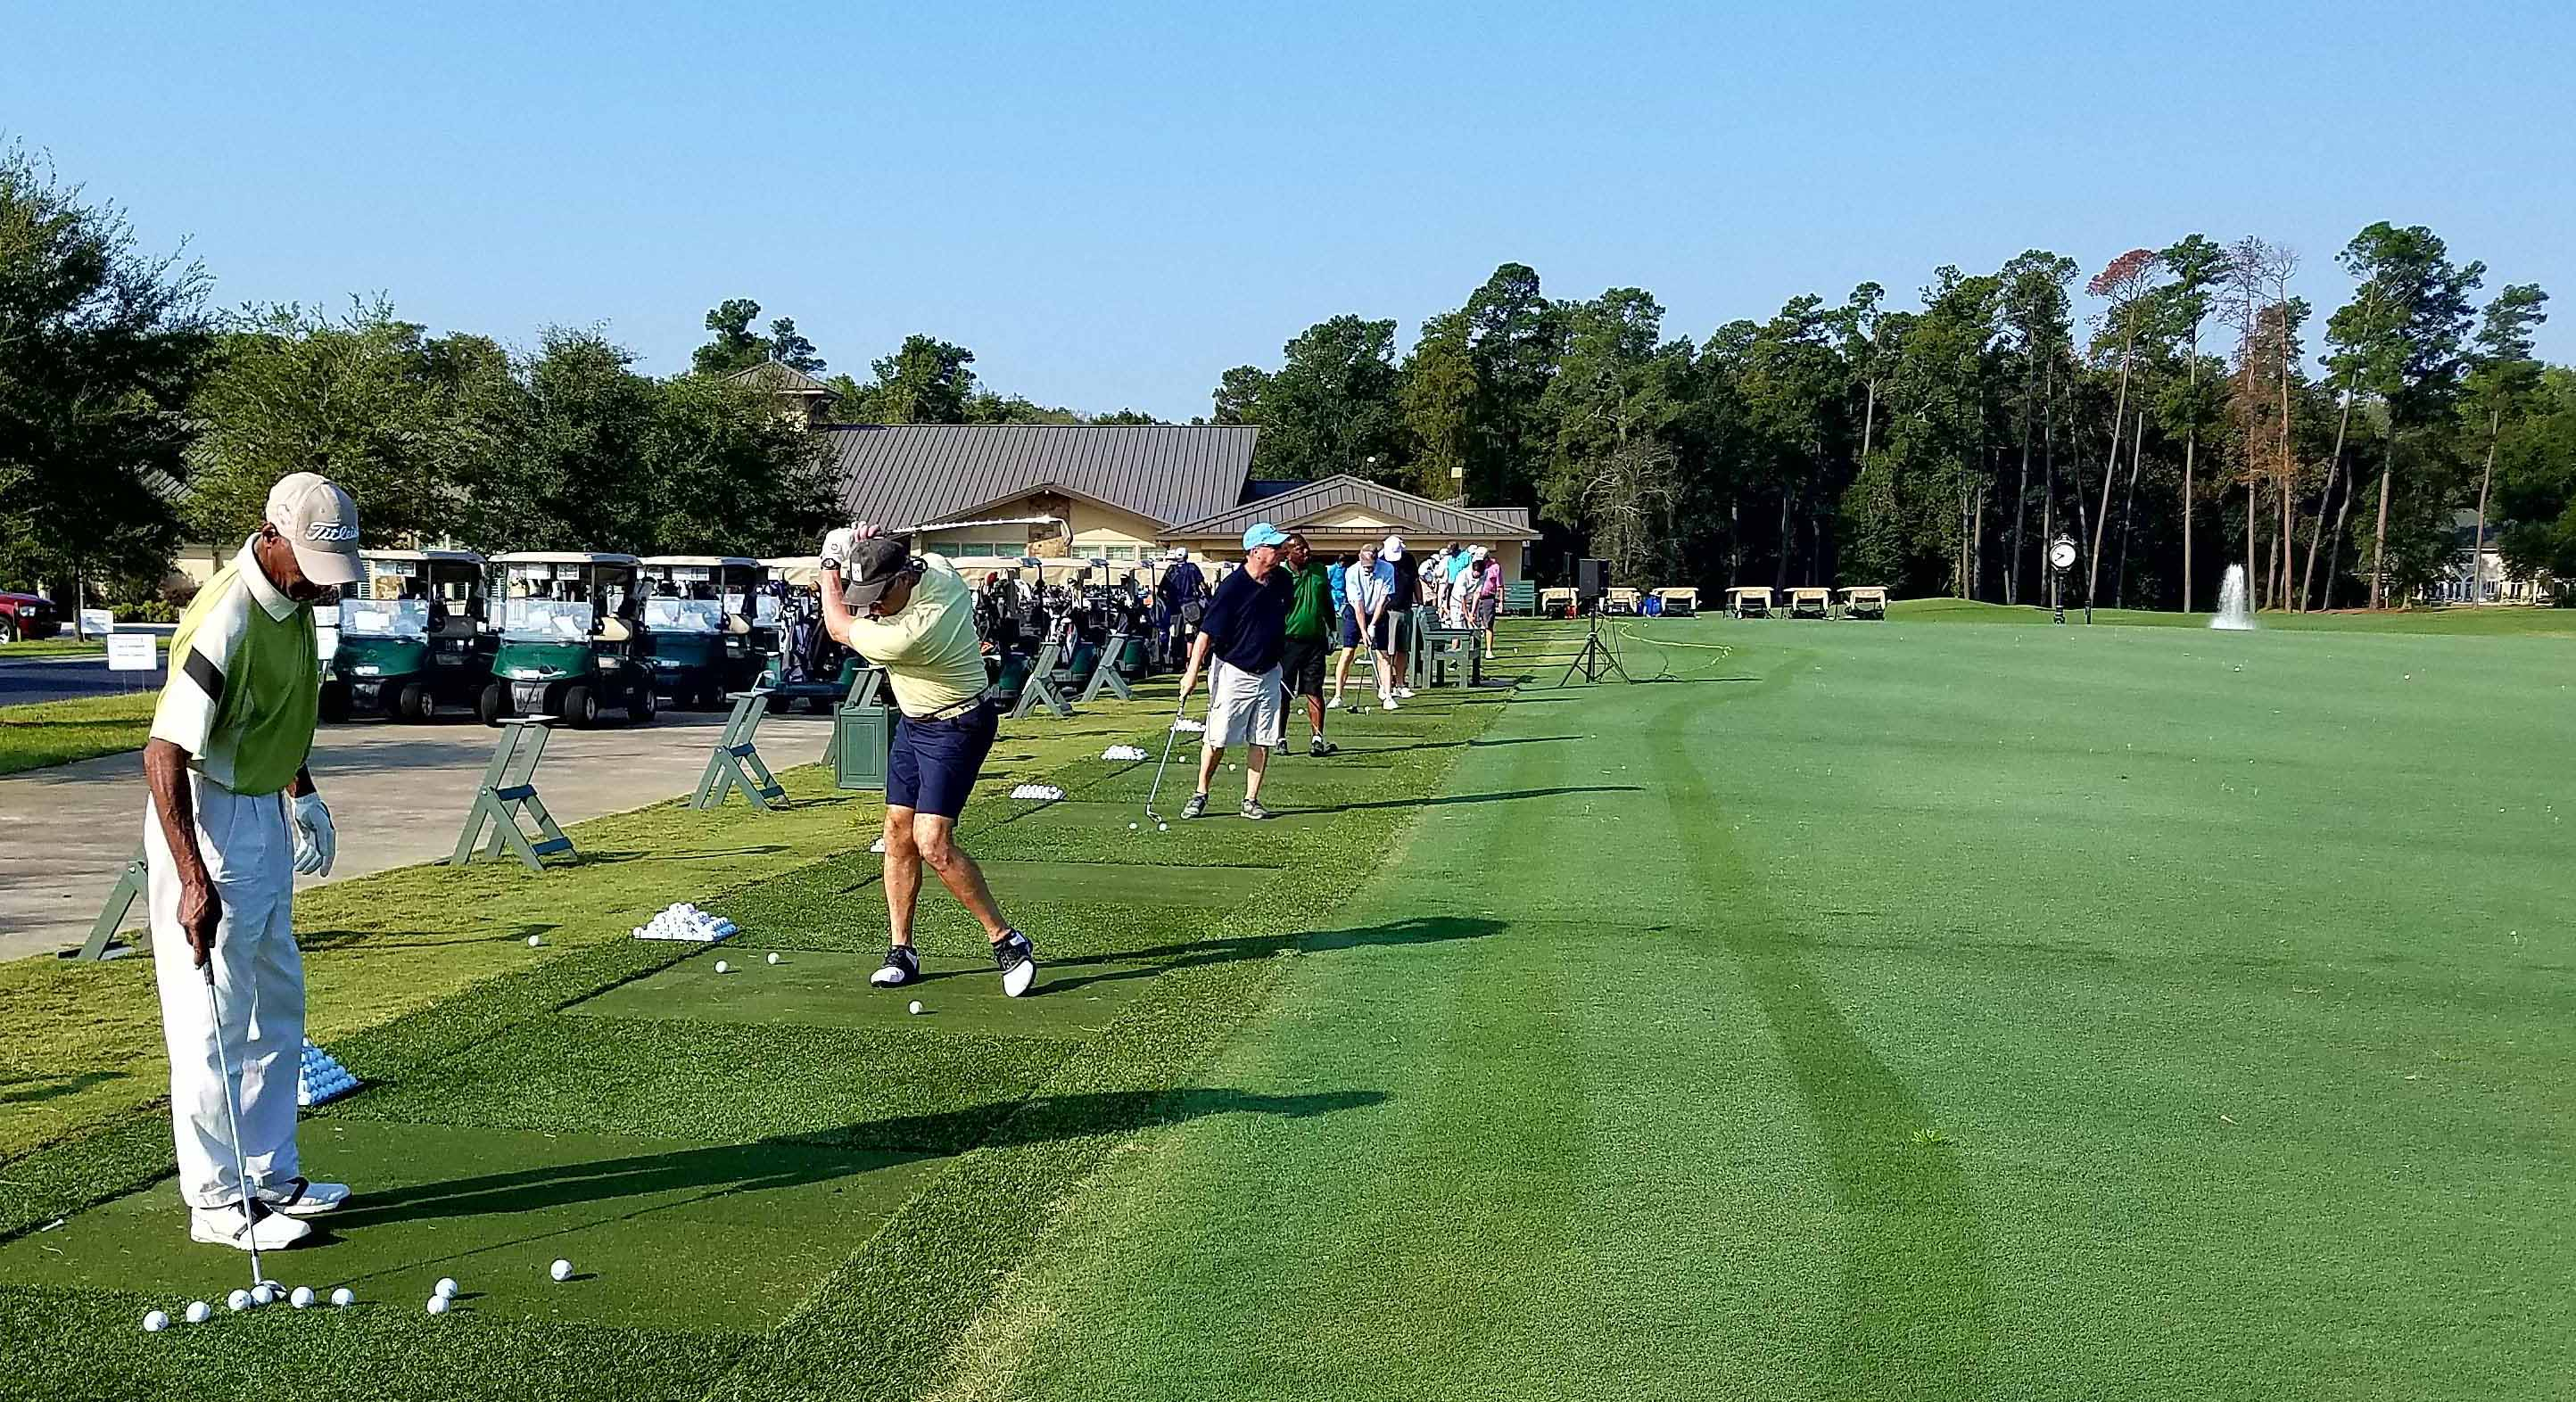 Golfers warm up at the start of the 2019 Bishop Holston AU-SC Golf Classic at the Orangeburg Country Club in September.